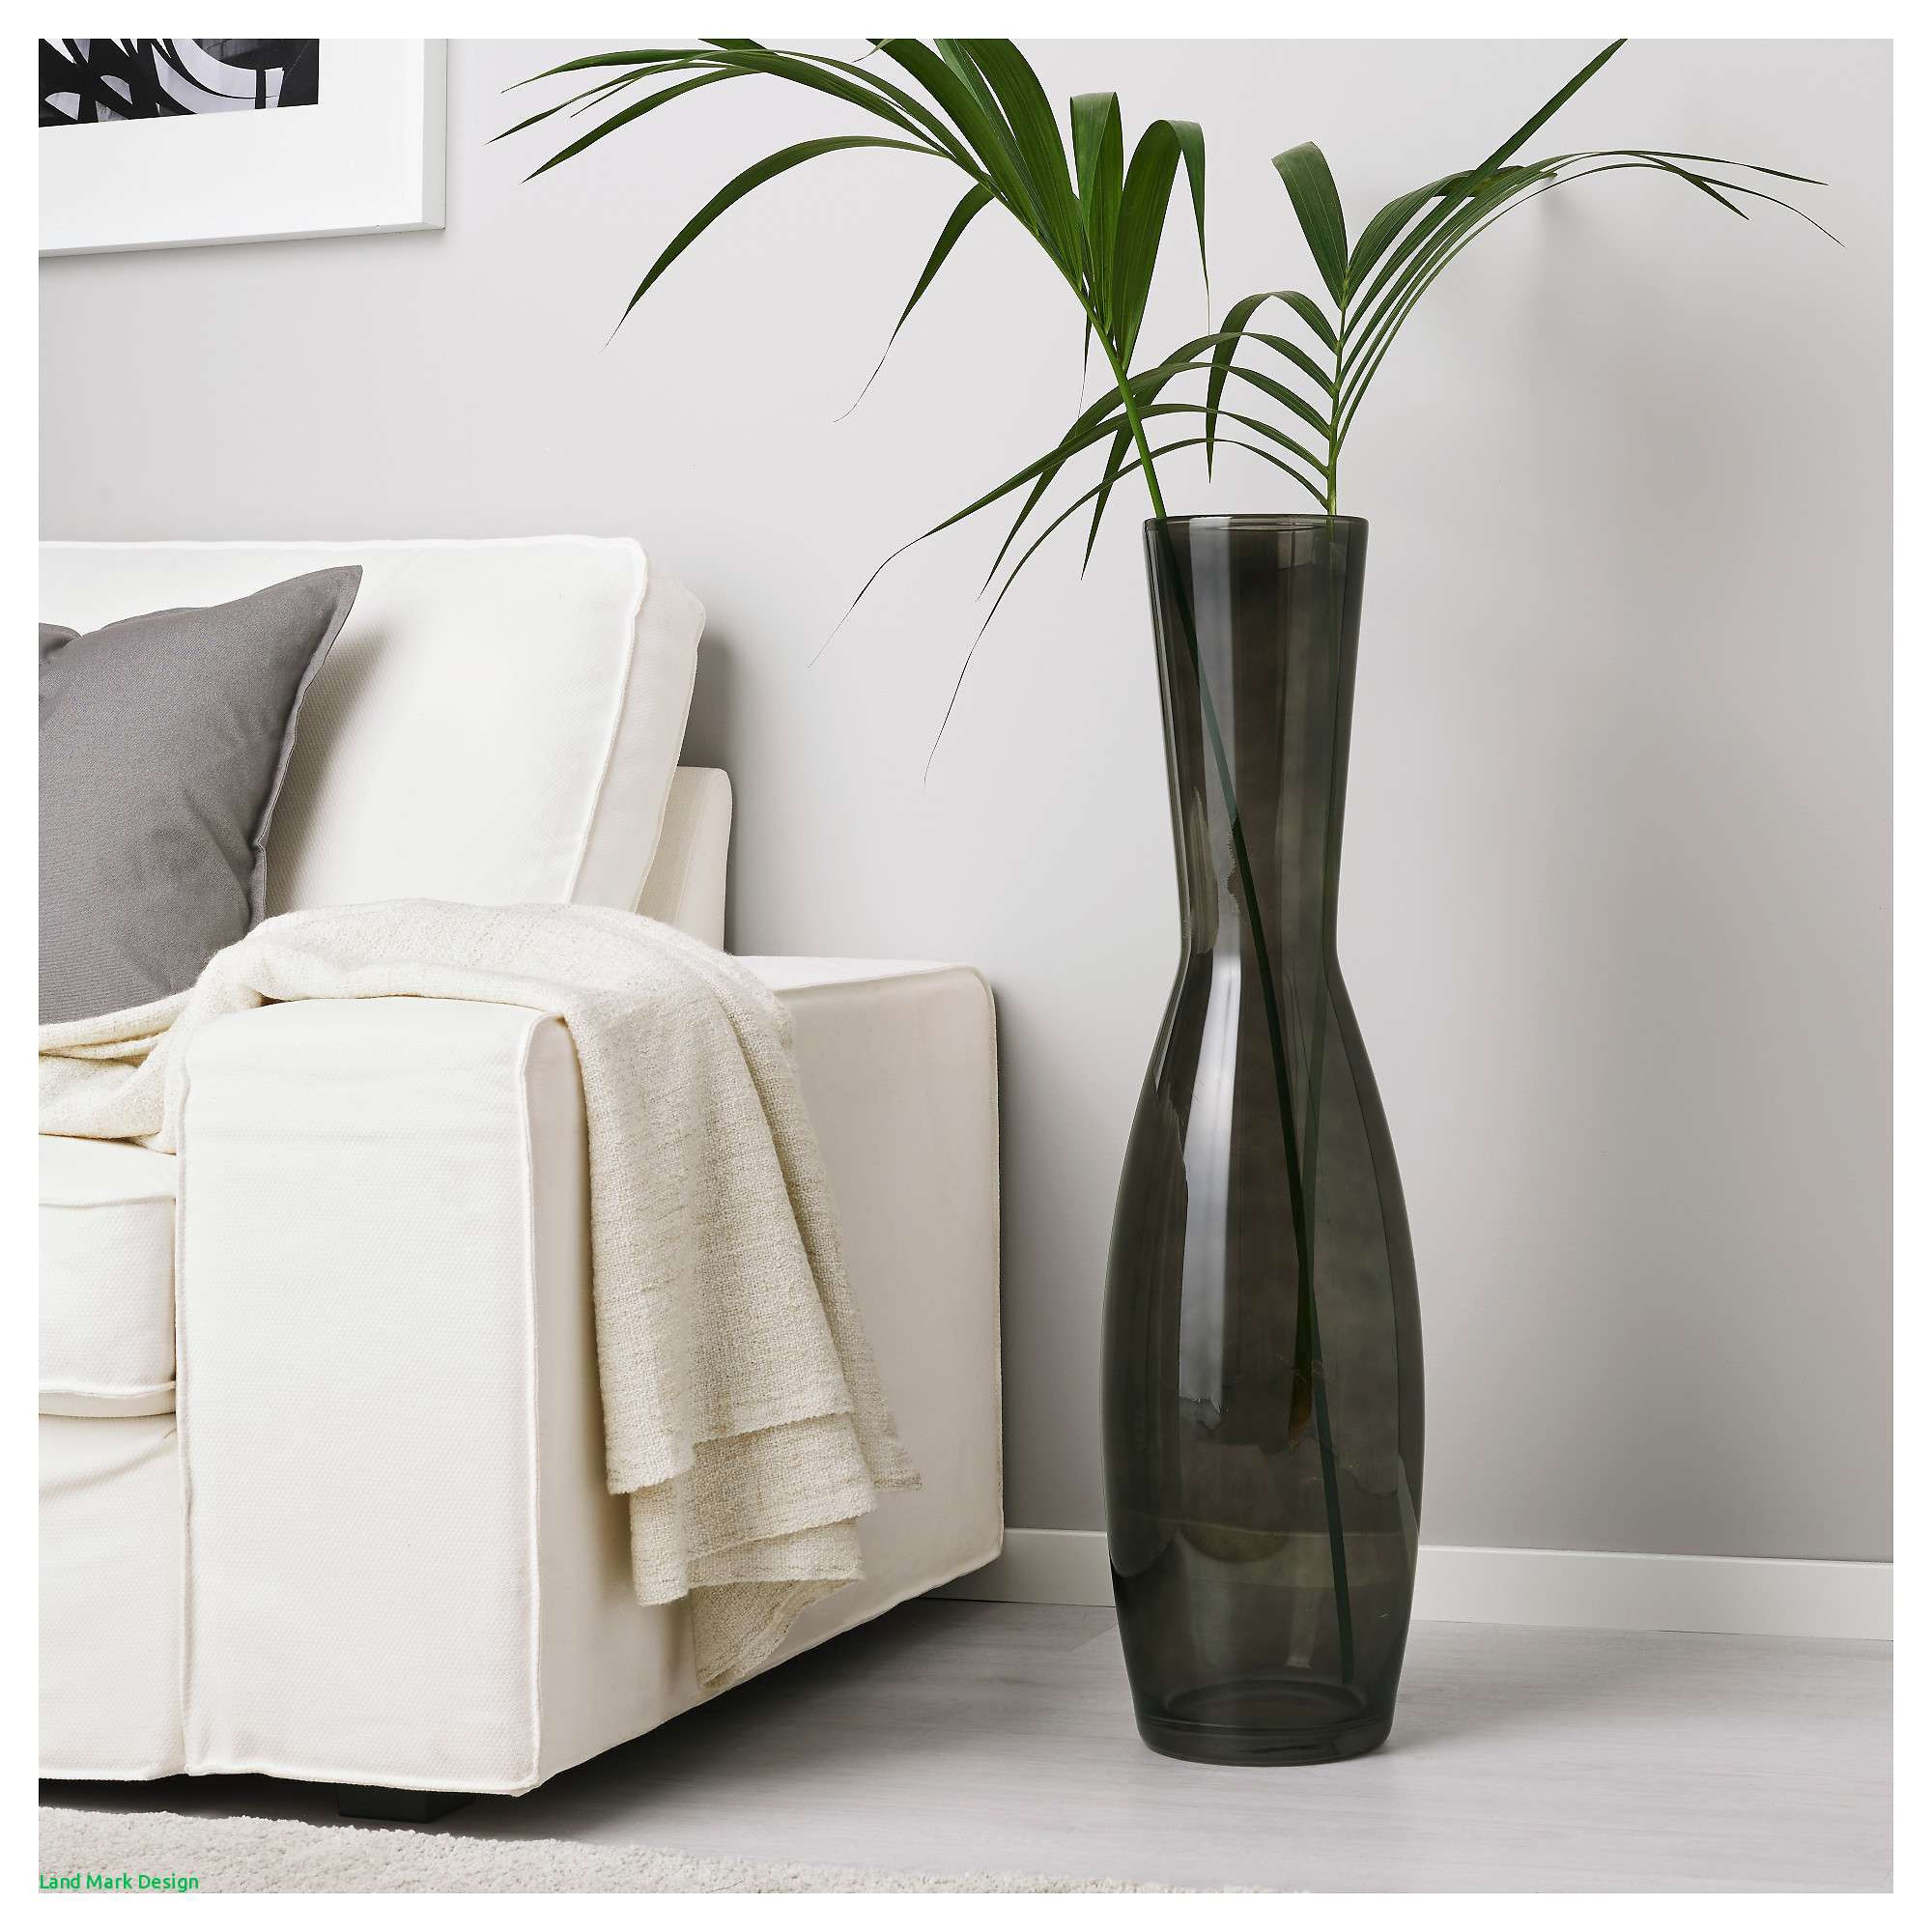 large clear glass vases for the floor of large white vases photos living room glass vases fresh clear vase 0d regarding large white vases image floor vases of large white vases photos living room glass vases fresh